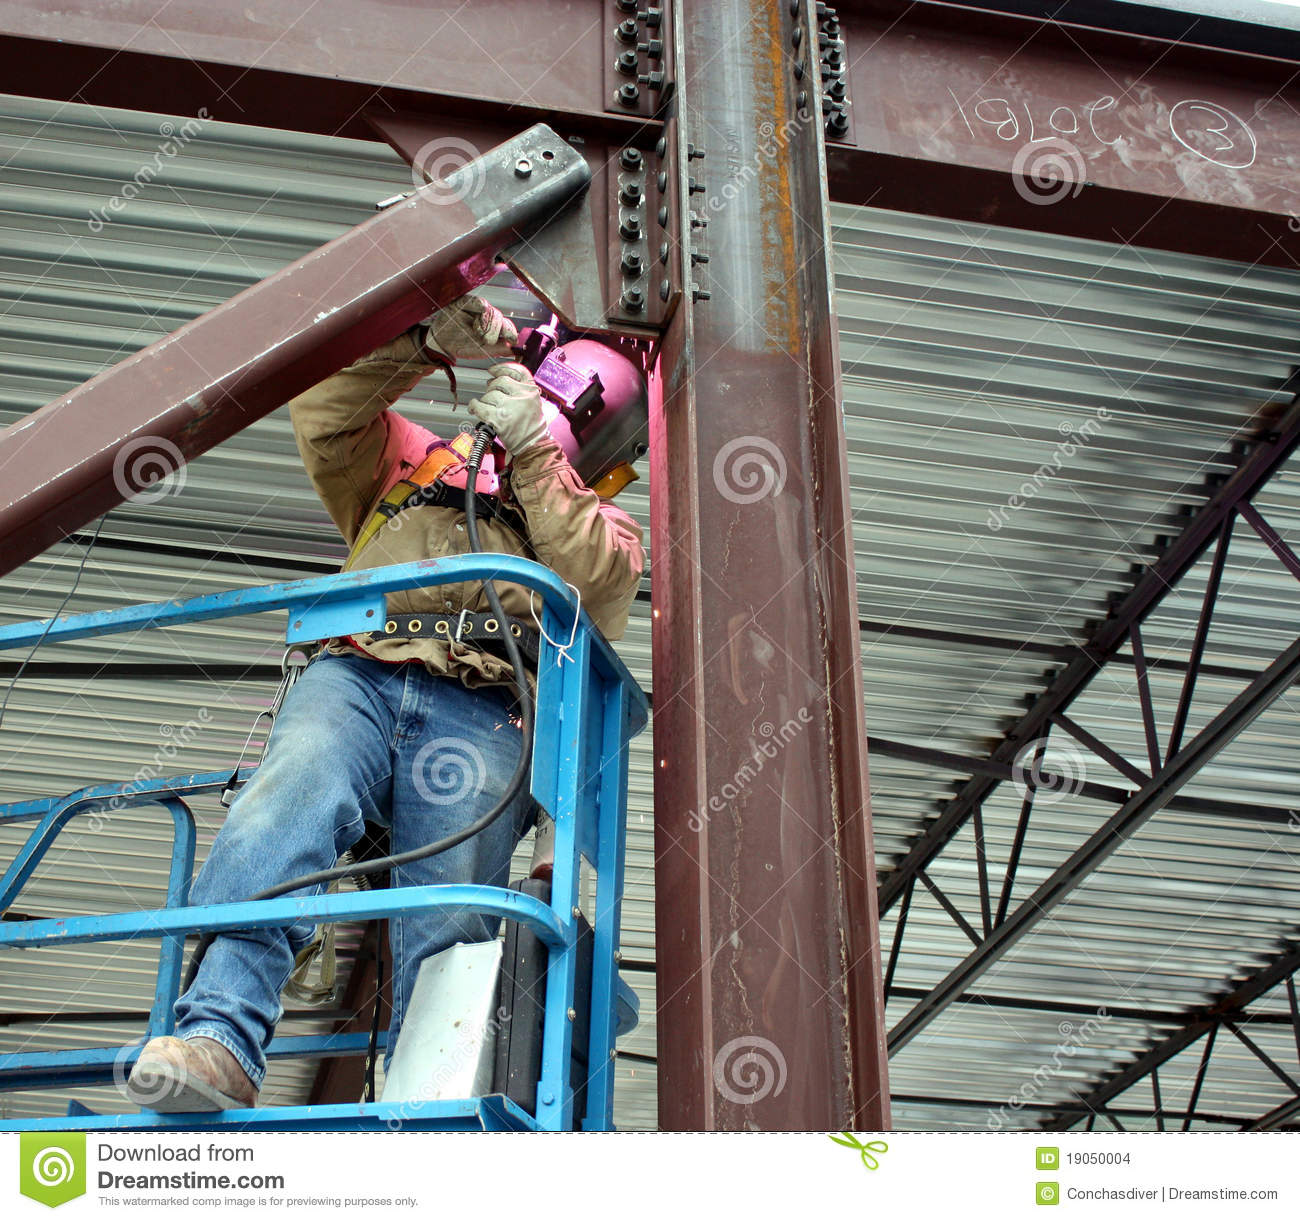 structural welder stock photos images pictures images flux core welding stock images